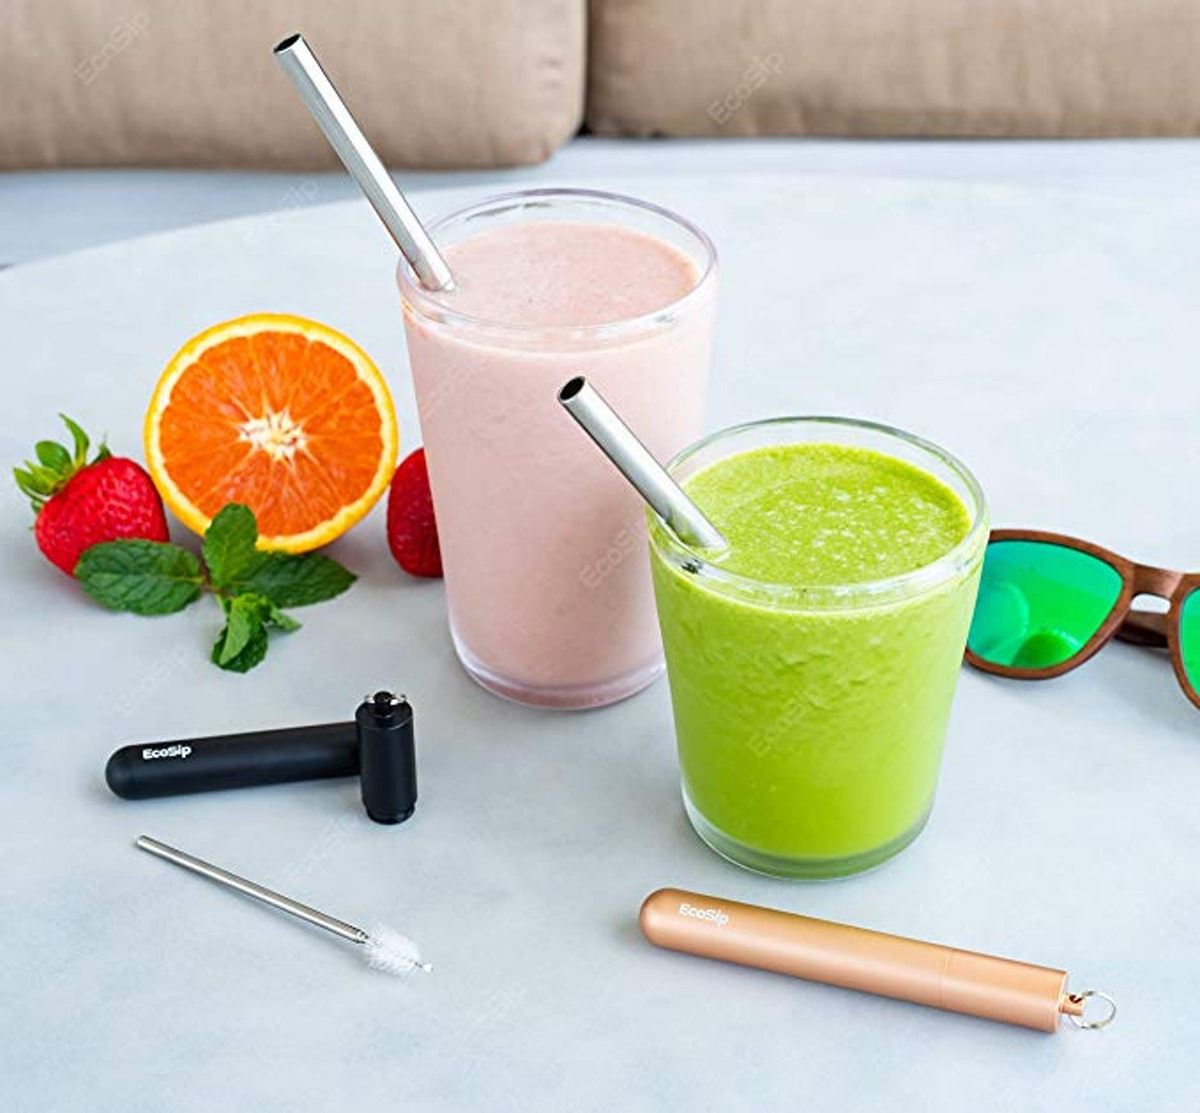 EcoSip Collapsible Telescopic Drinking Straw